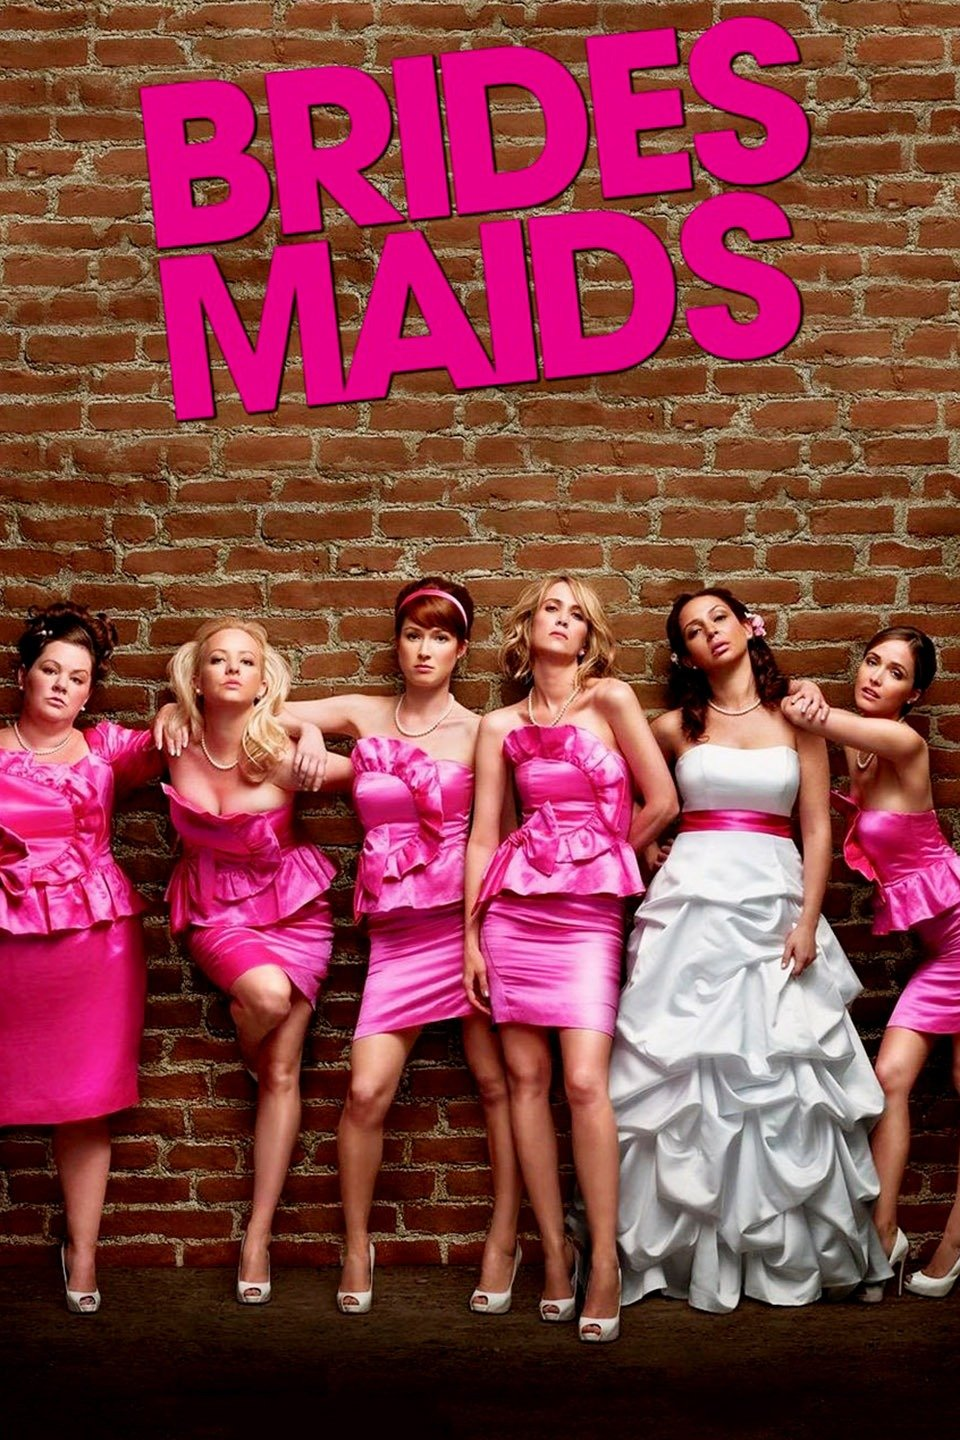 Sexism/Cinema Film Series - Bridesmaids